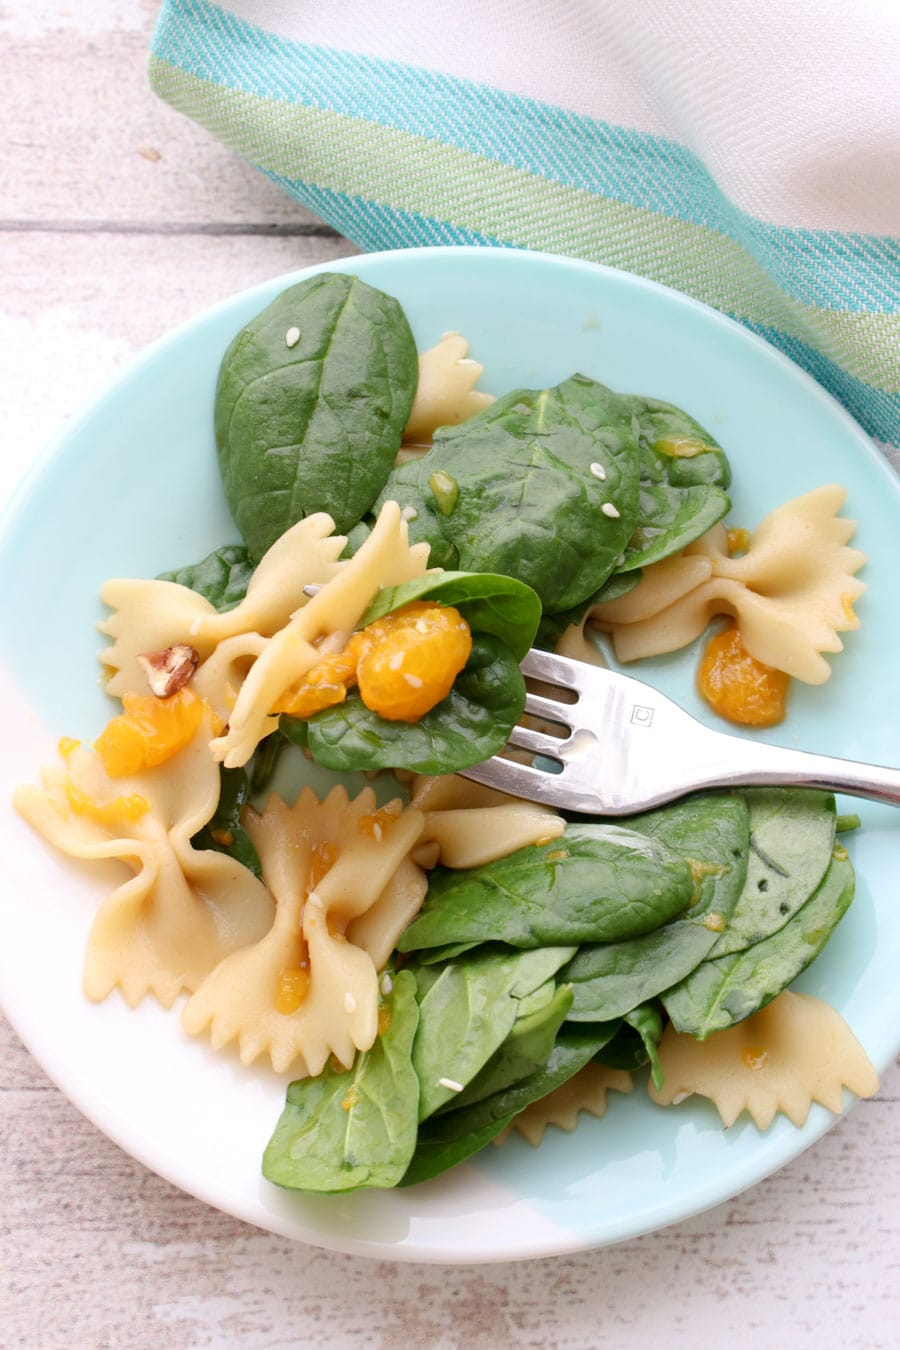 single dish of spinach pasta salad